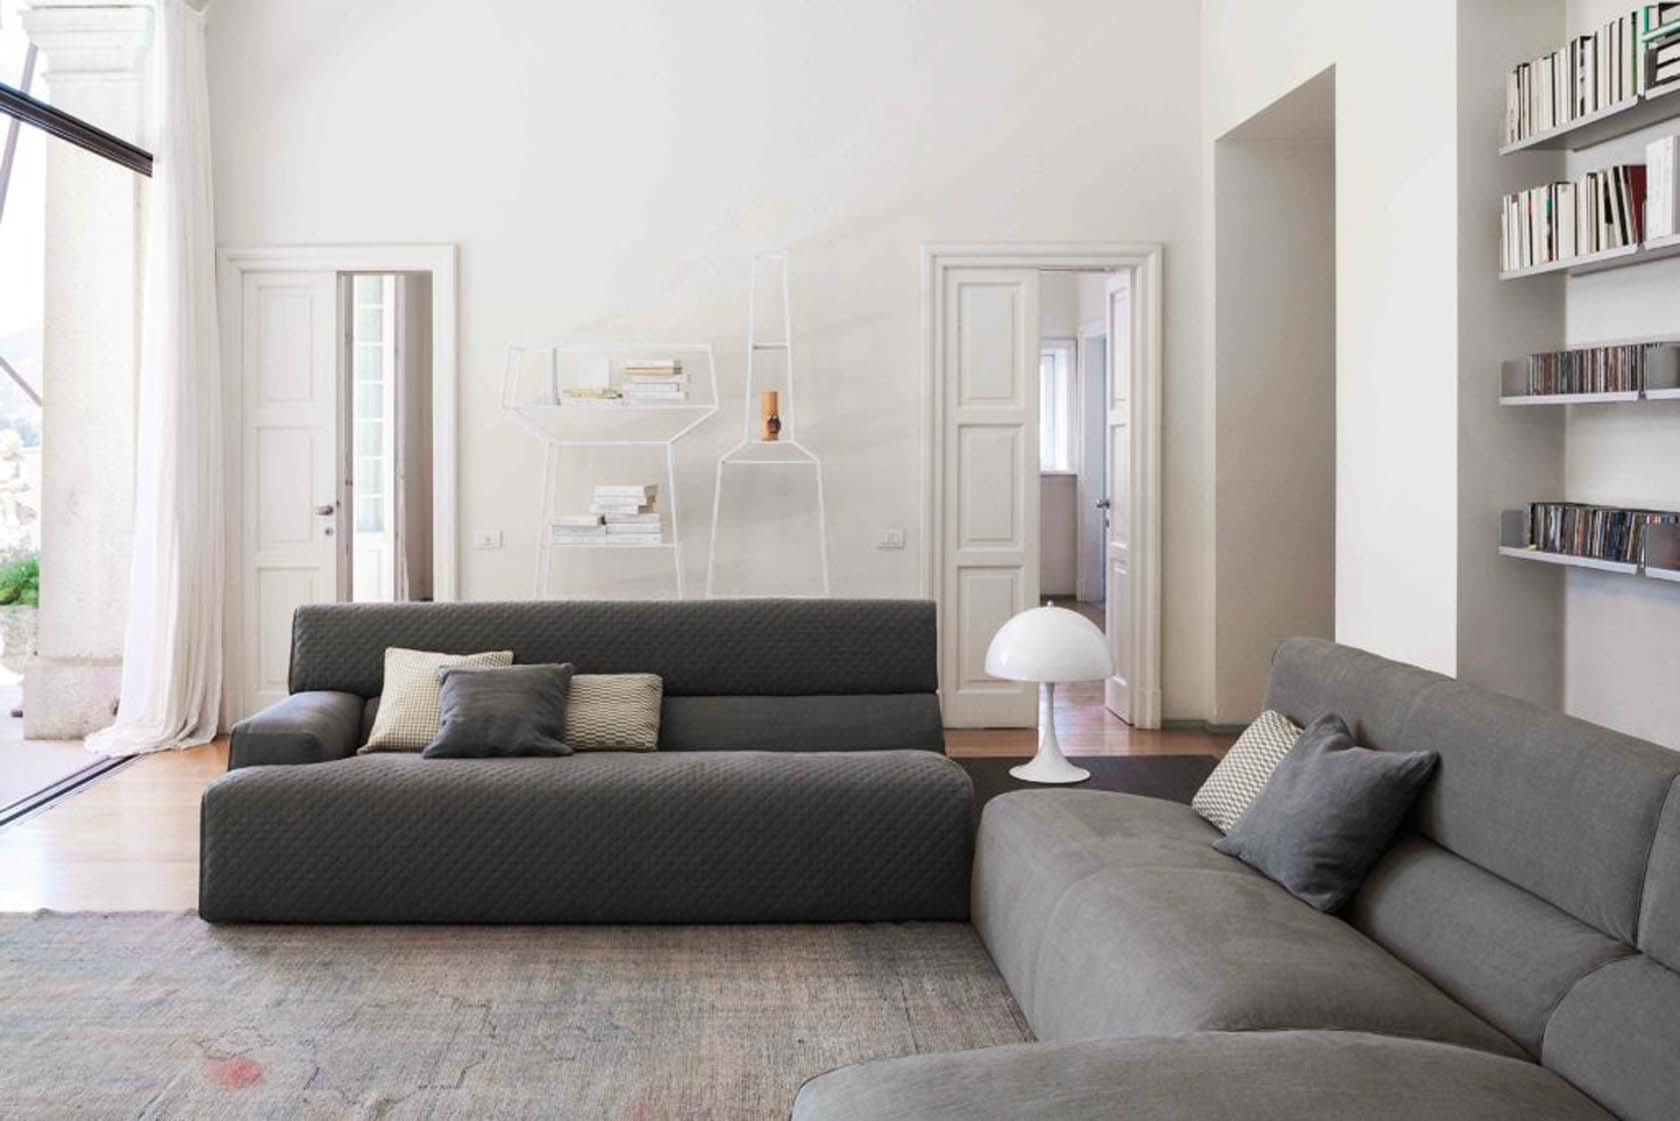 Perfect Sofa For Your Space